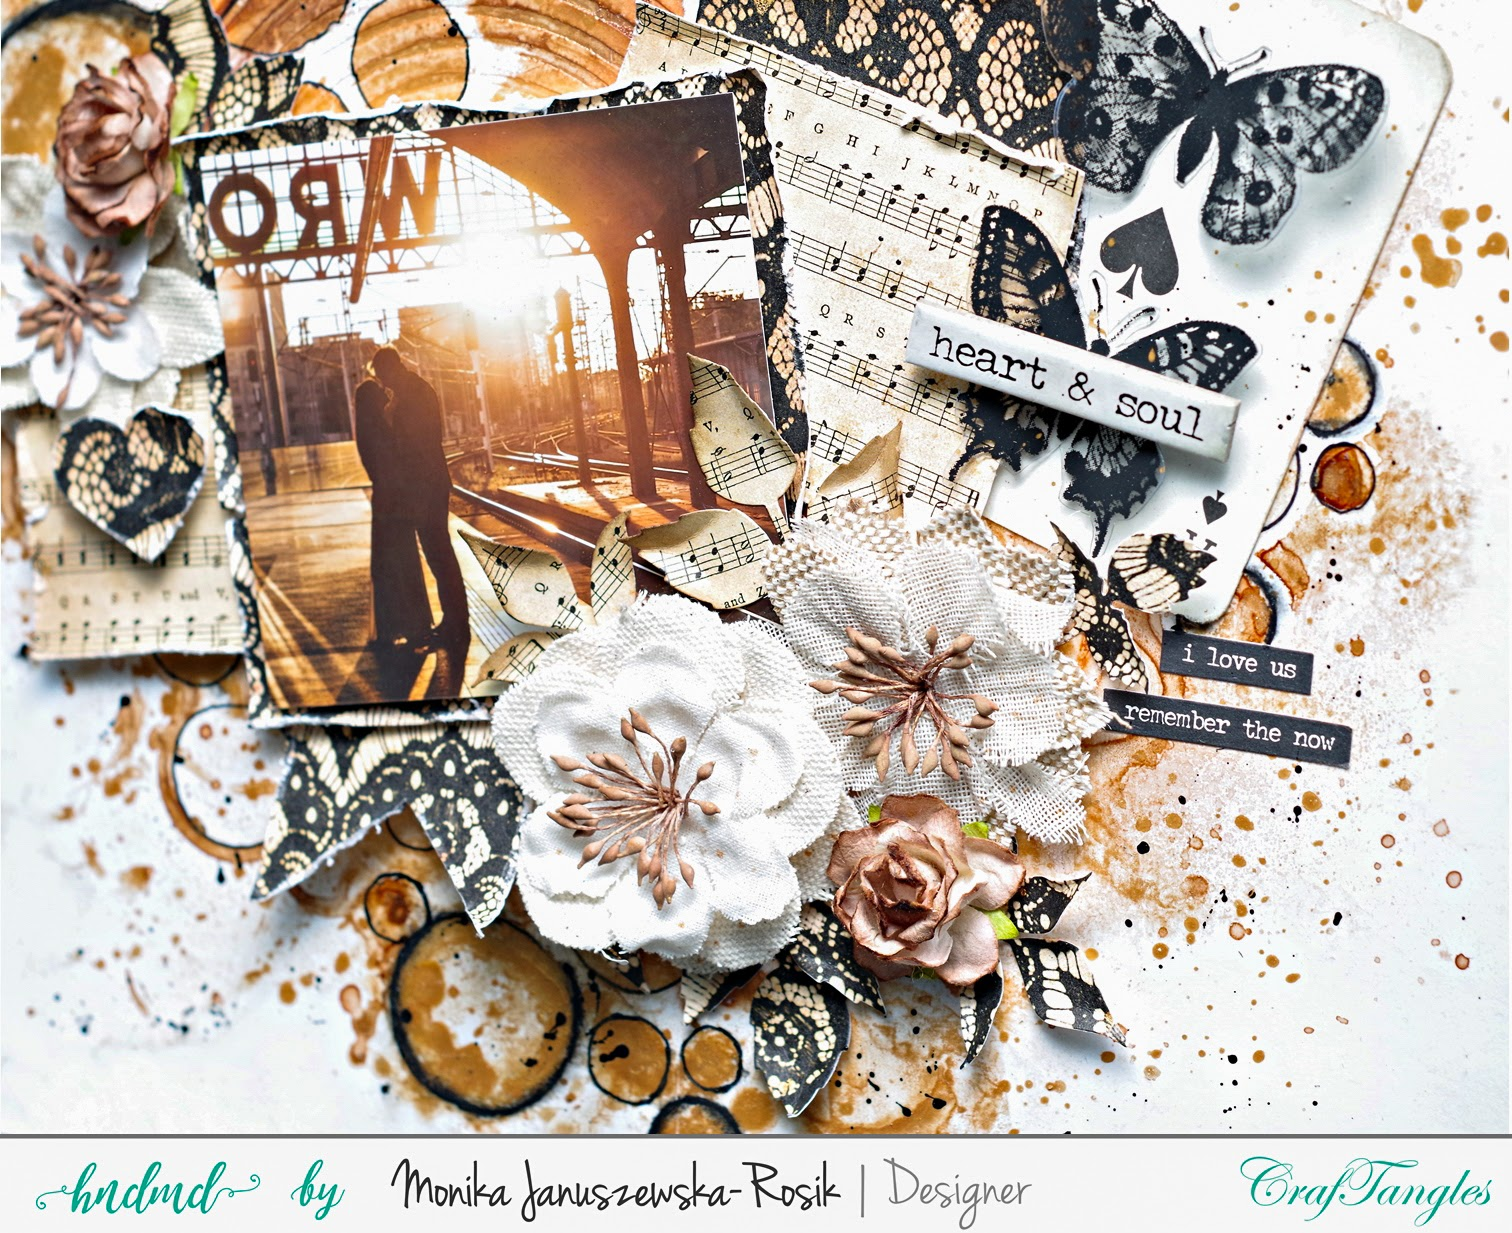 Mixed media Layout with CrafTangels stencils 4